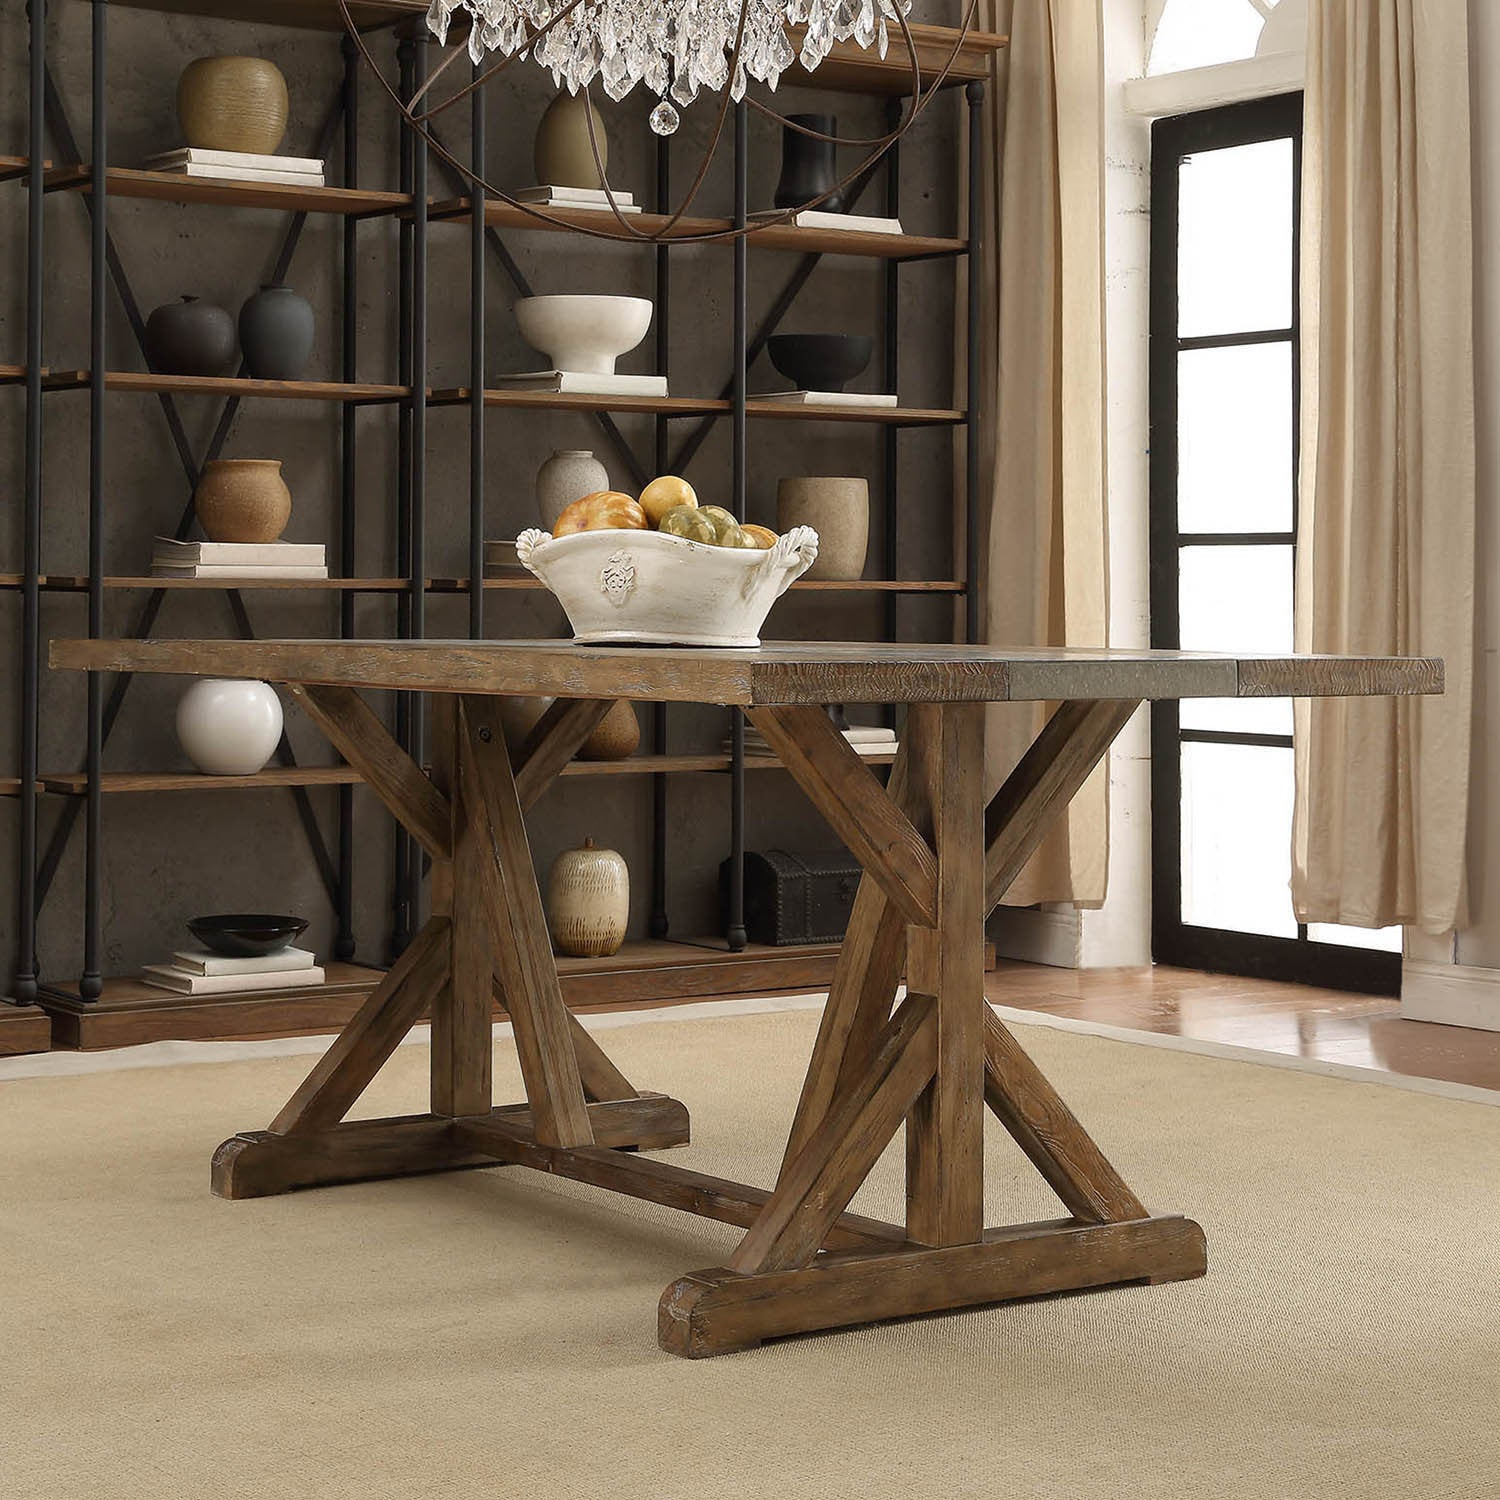 Benchwright-Rustic-Pine-Concrete-Accent-Trestle-Reinforced-Dining-